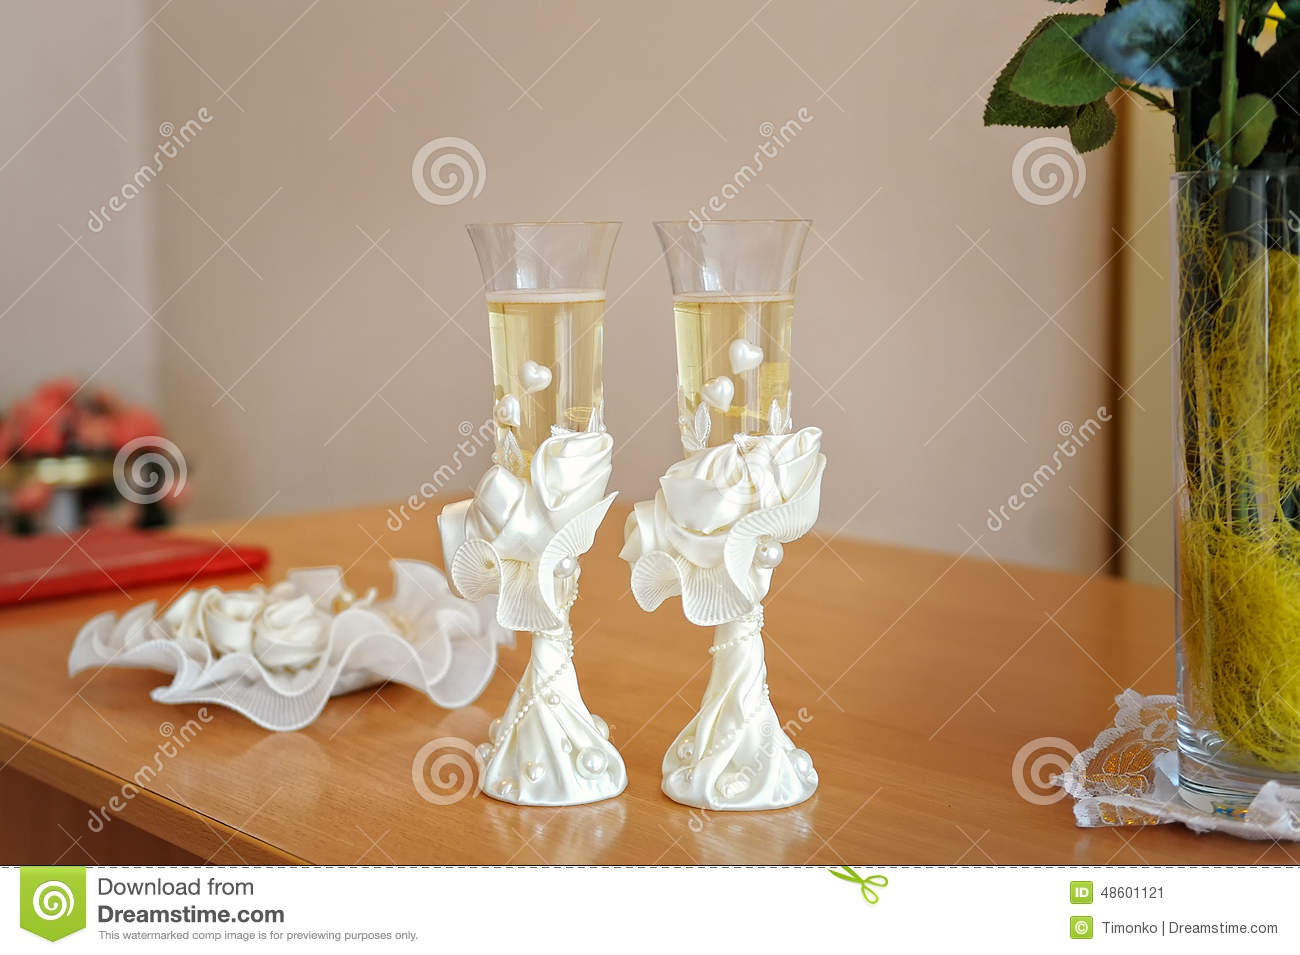 stock photo two wedding glasses decorated champagne image wedding glasses Two wedding glasses decorated with champagne